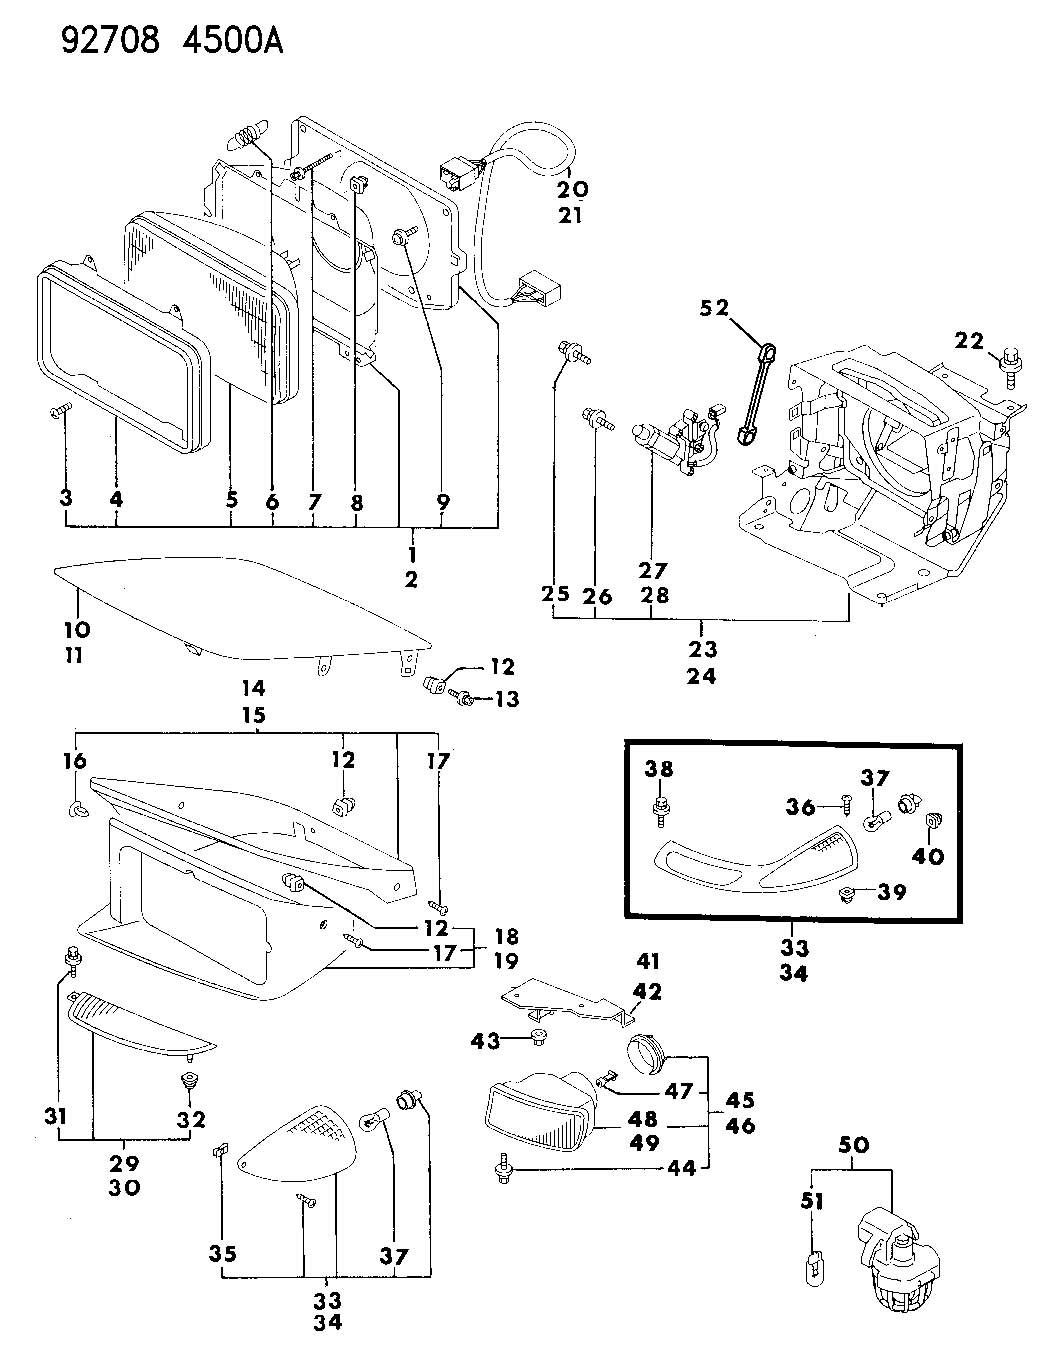 Acura Engine Cooling Diagram: Acura rsx engine wiring